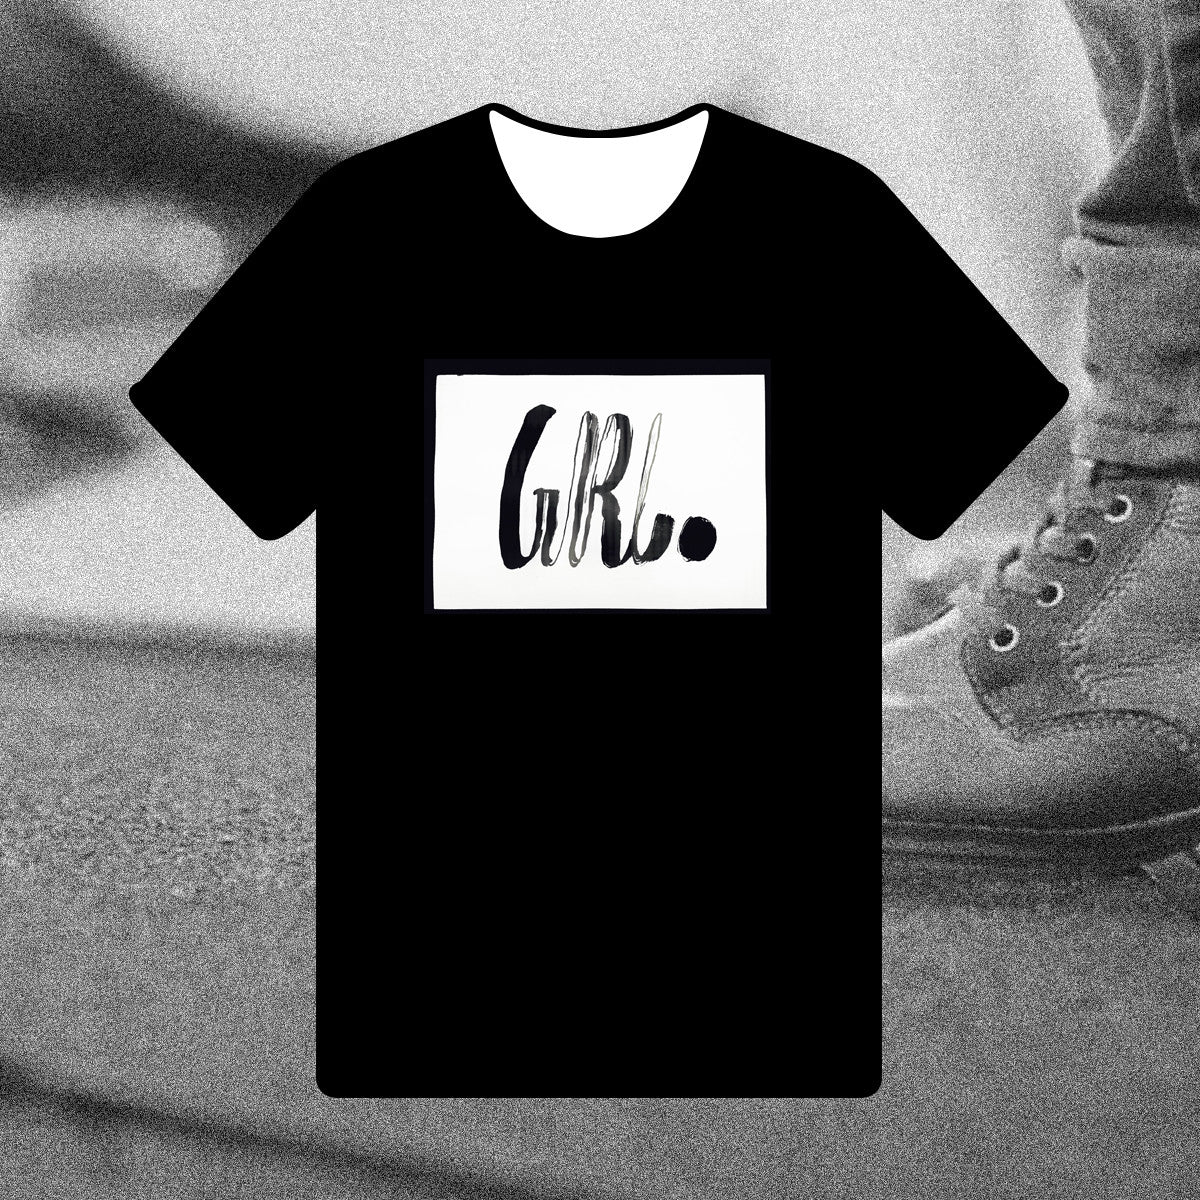 Girl { Unisex Black/White Premium Music-inspired Graphic Print T-shirt }